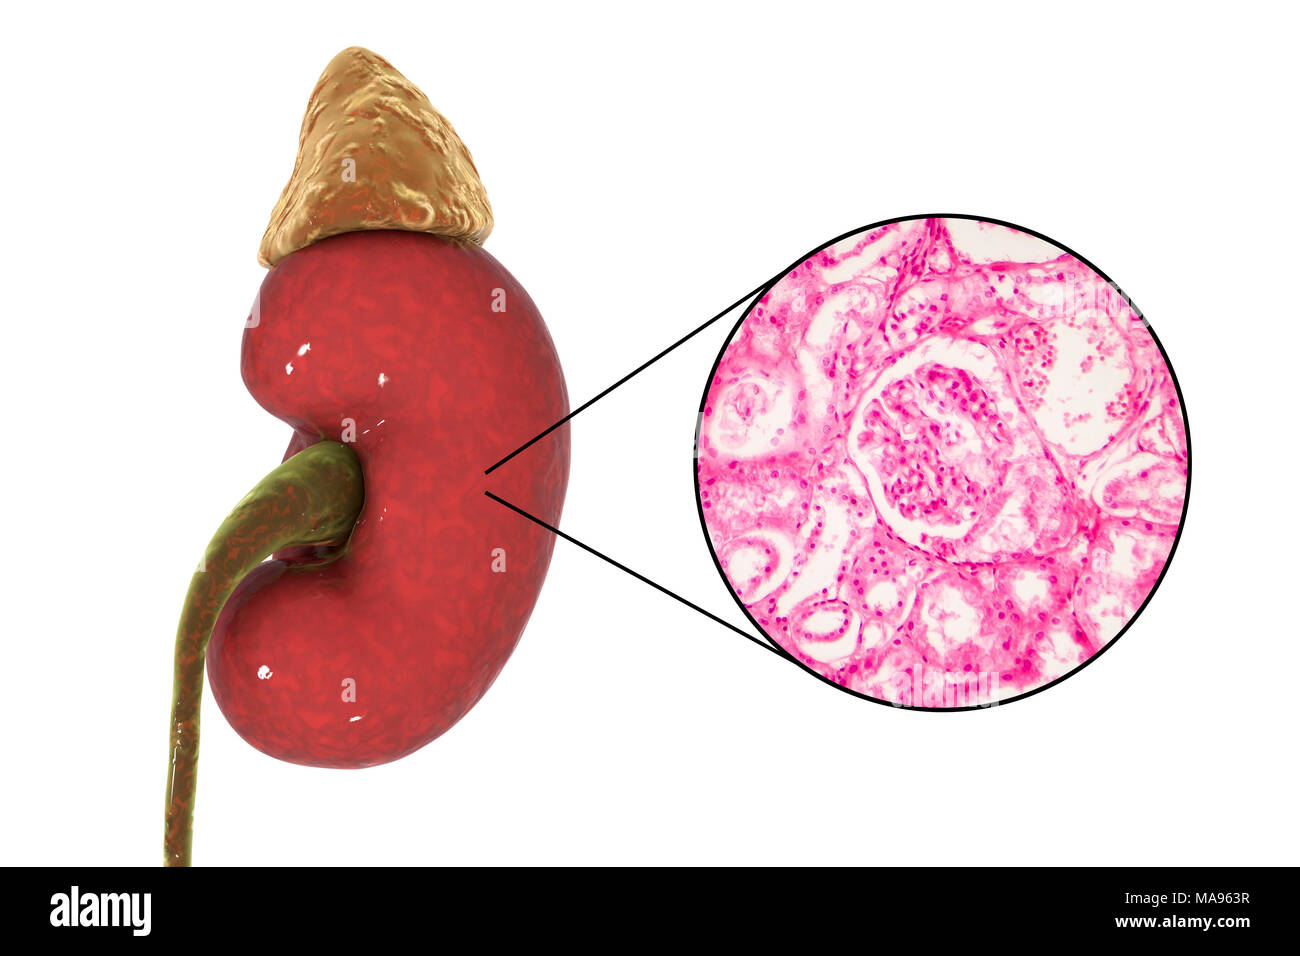 Illustration Of Human Kidney And Light Micrograph Of A Section